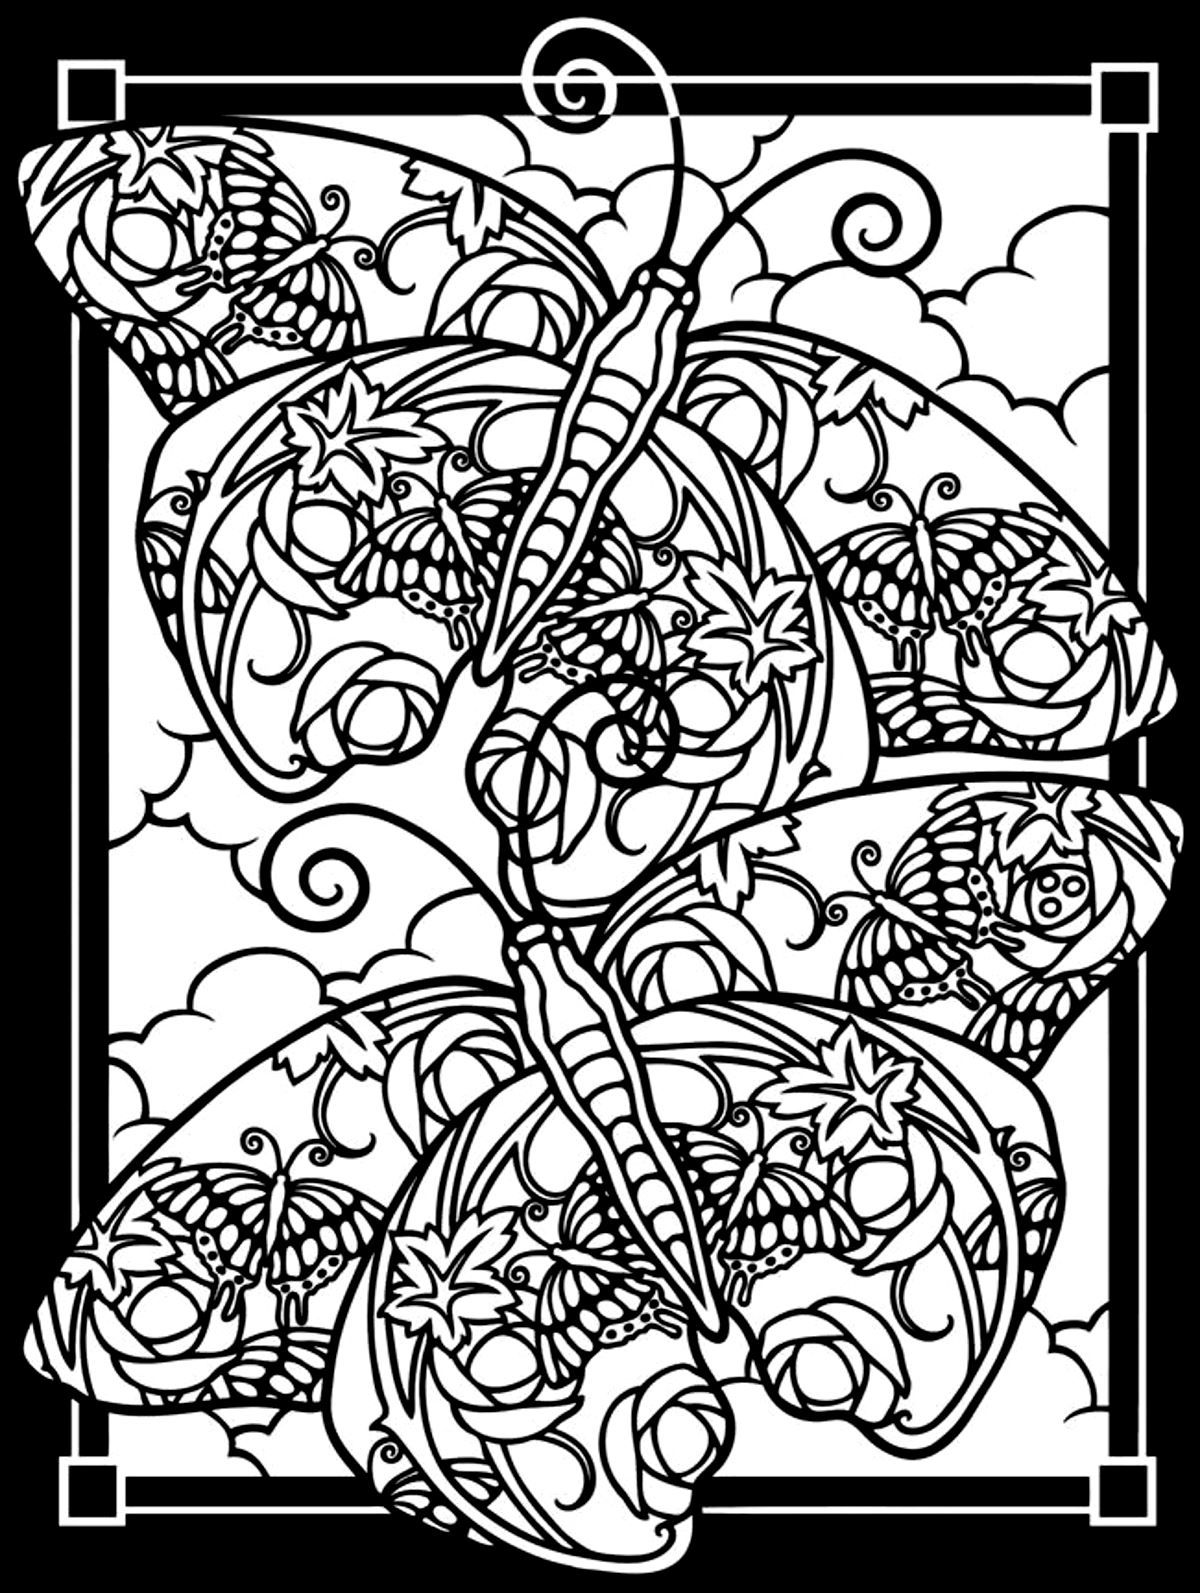 free coloring page coloring adult difficult two butterflies black background